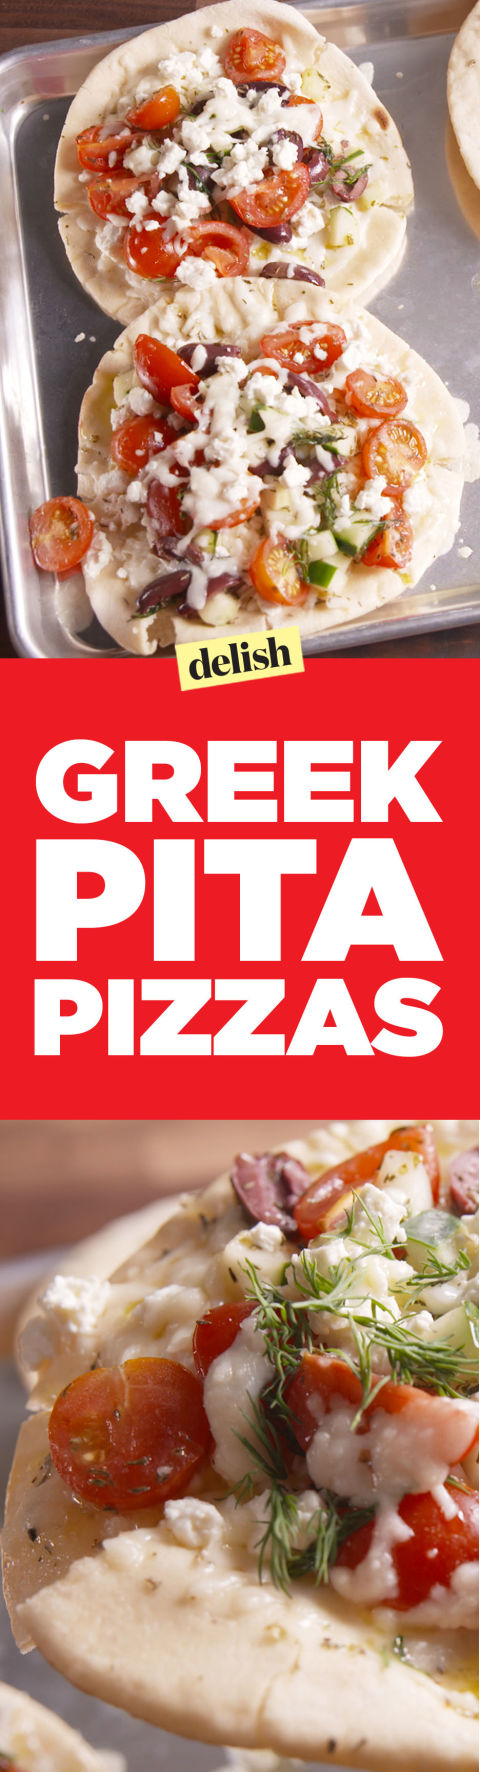 Best Greek Pita Pizzas Recipe - How to Make Greek Pita Pizzas